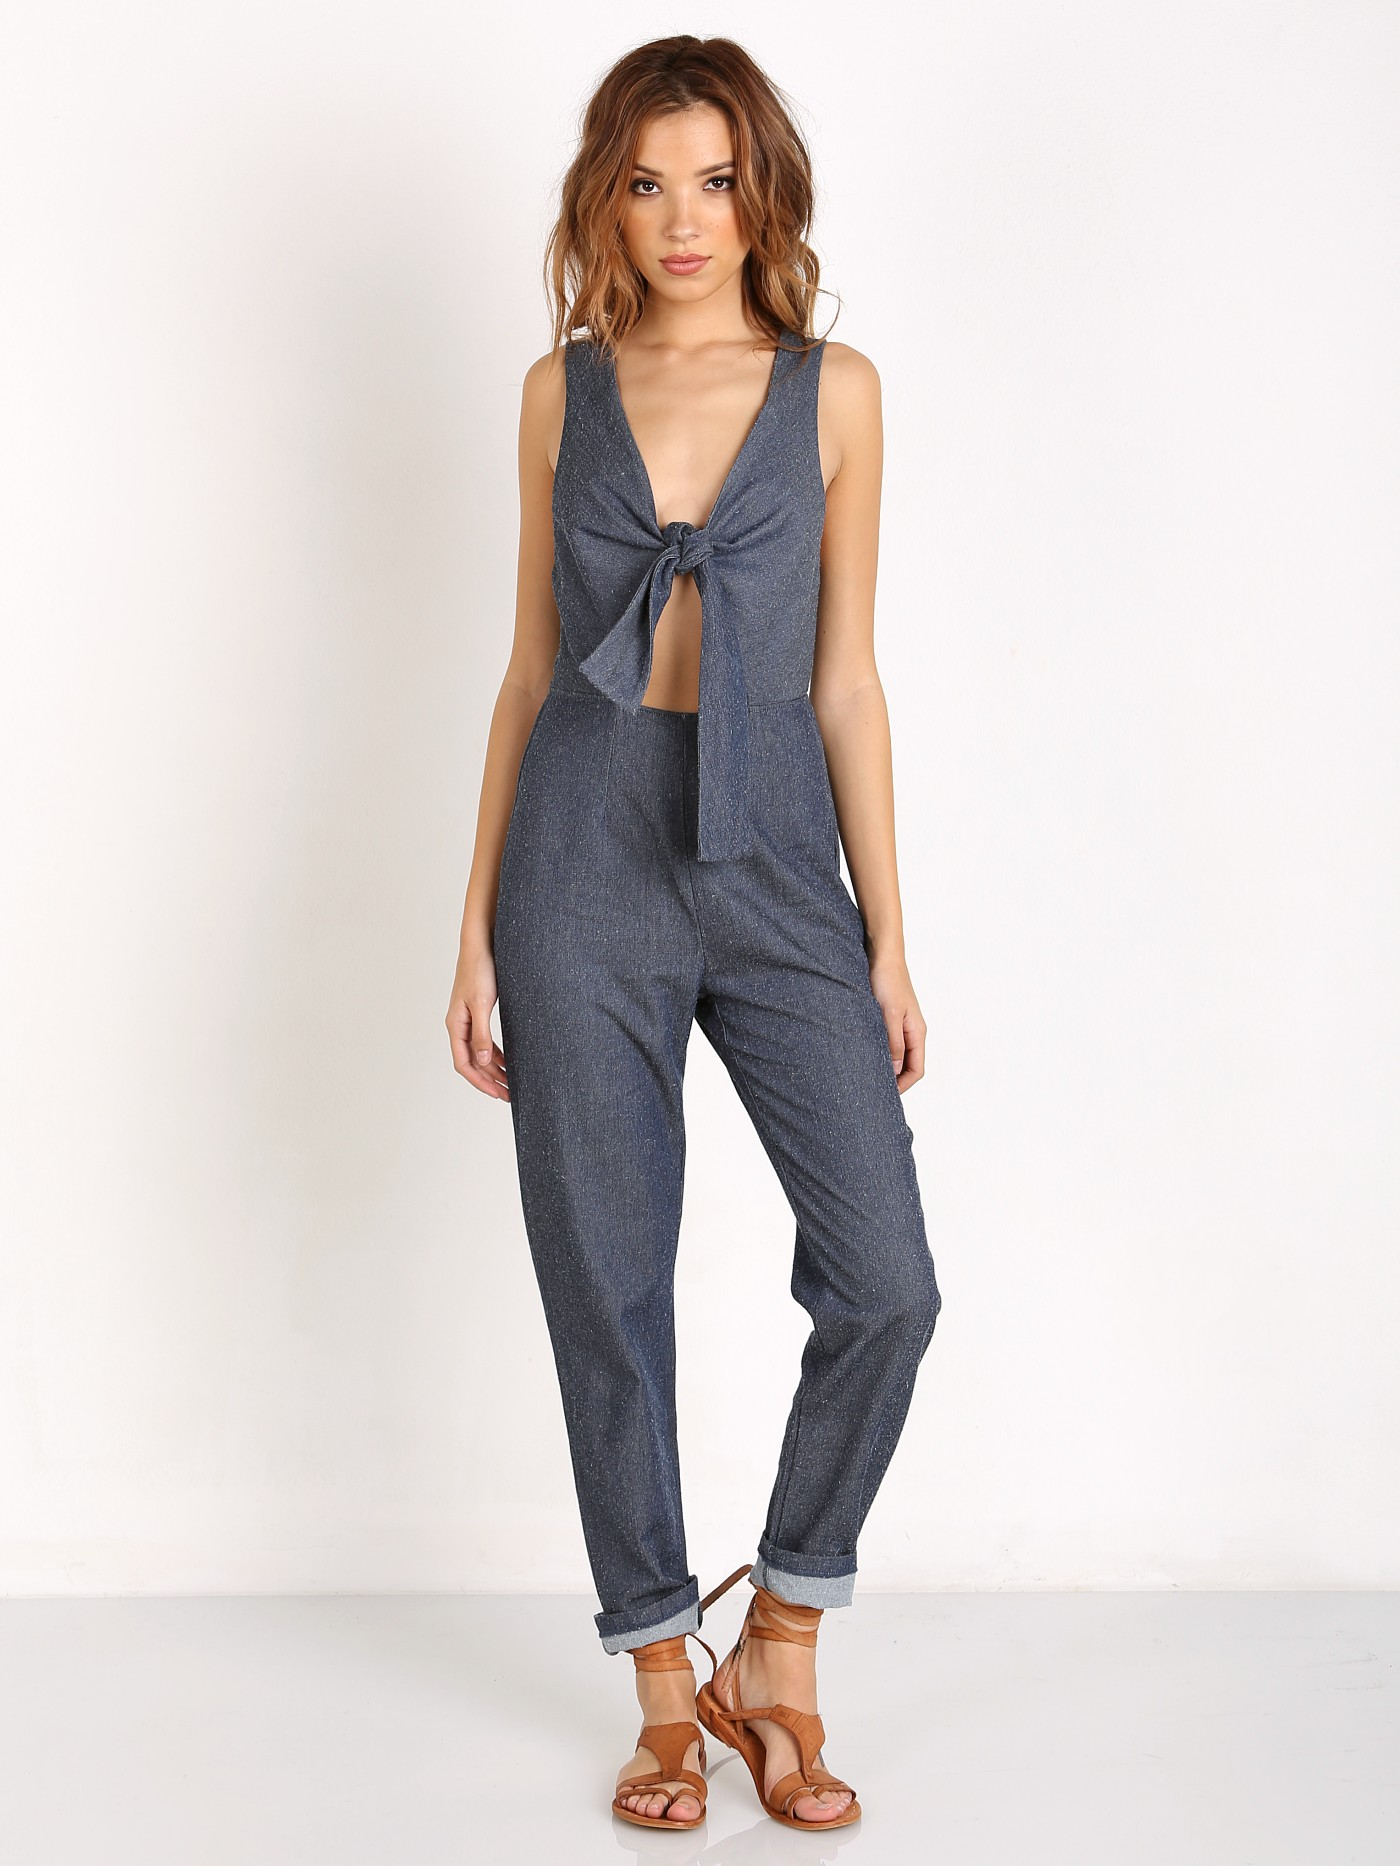 b84eeed7eef Solid   Striped The Jumpsuit Indigo R16WR11 - Free Shipping at Largo Drive